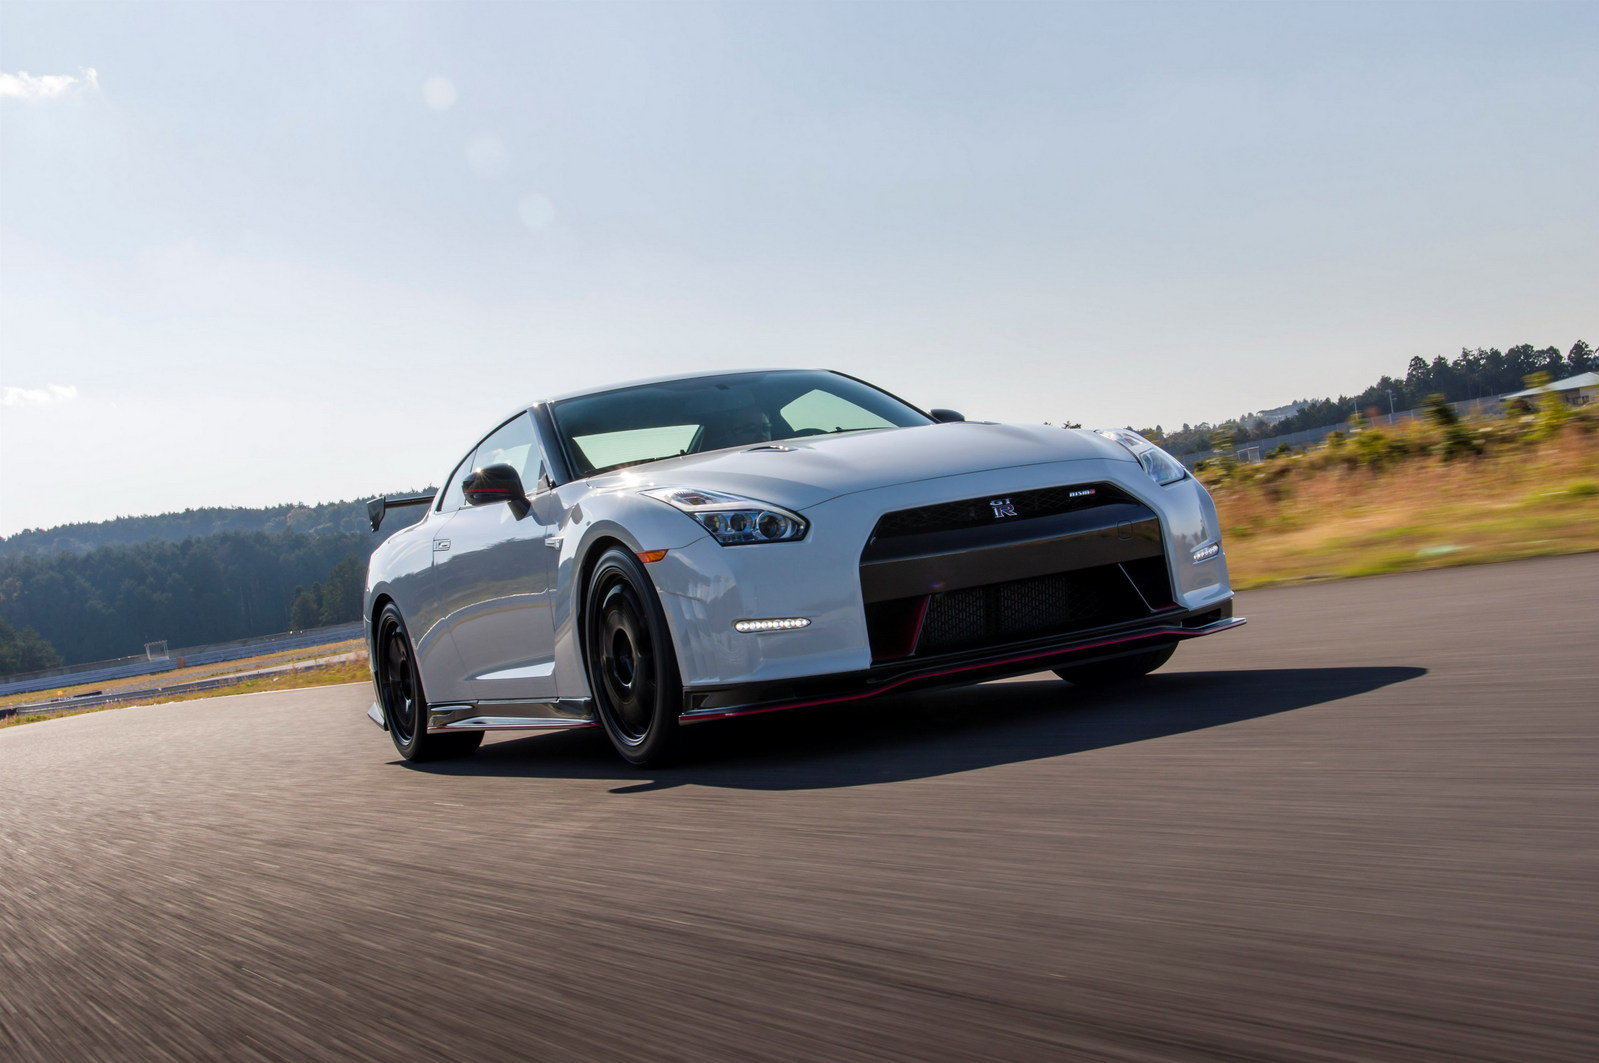 2015 nissan gt r nismo picture 541724 car review top speed. Black Bedroom Furniture Sets. Home Design Ideas